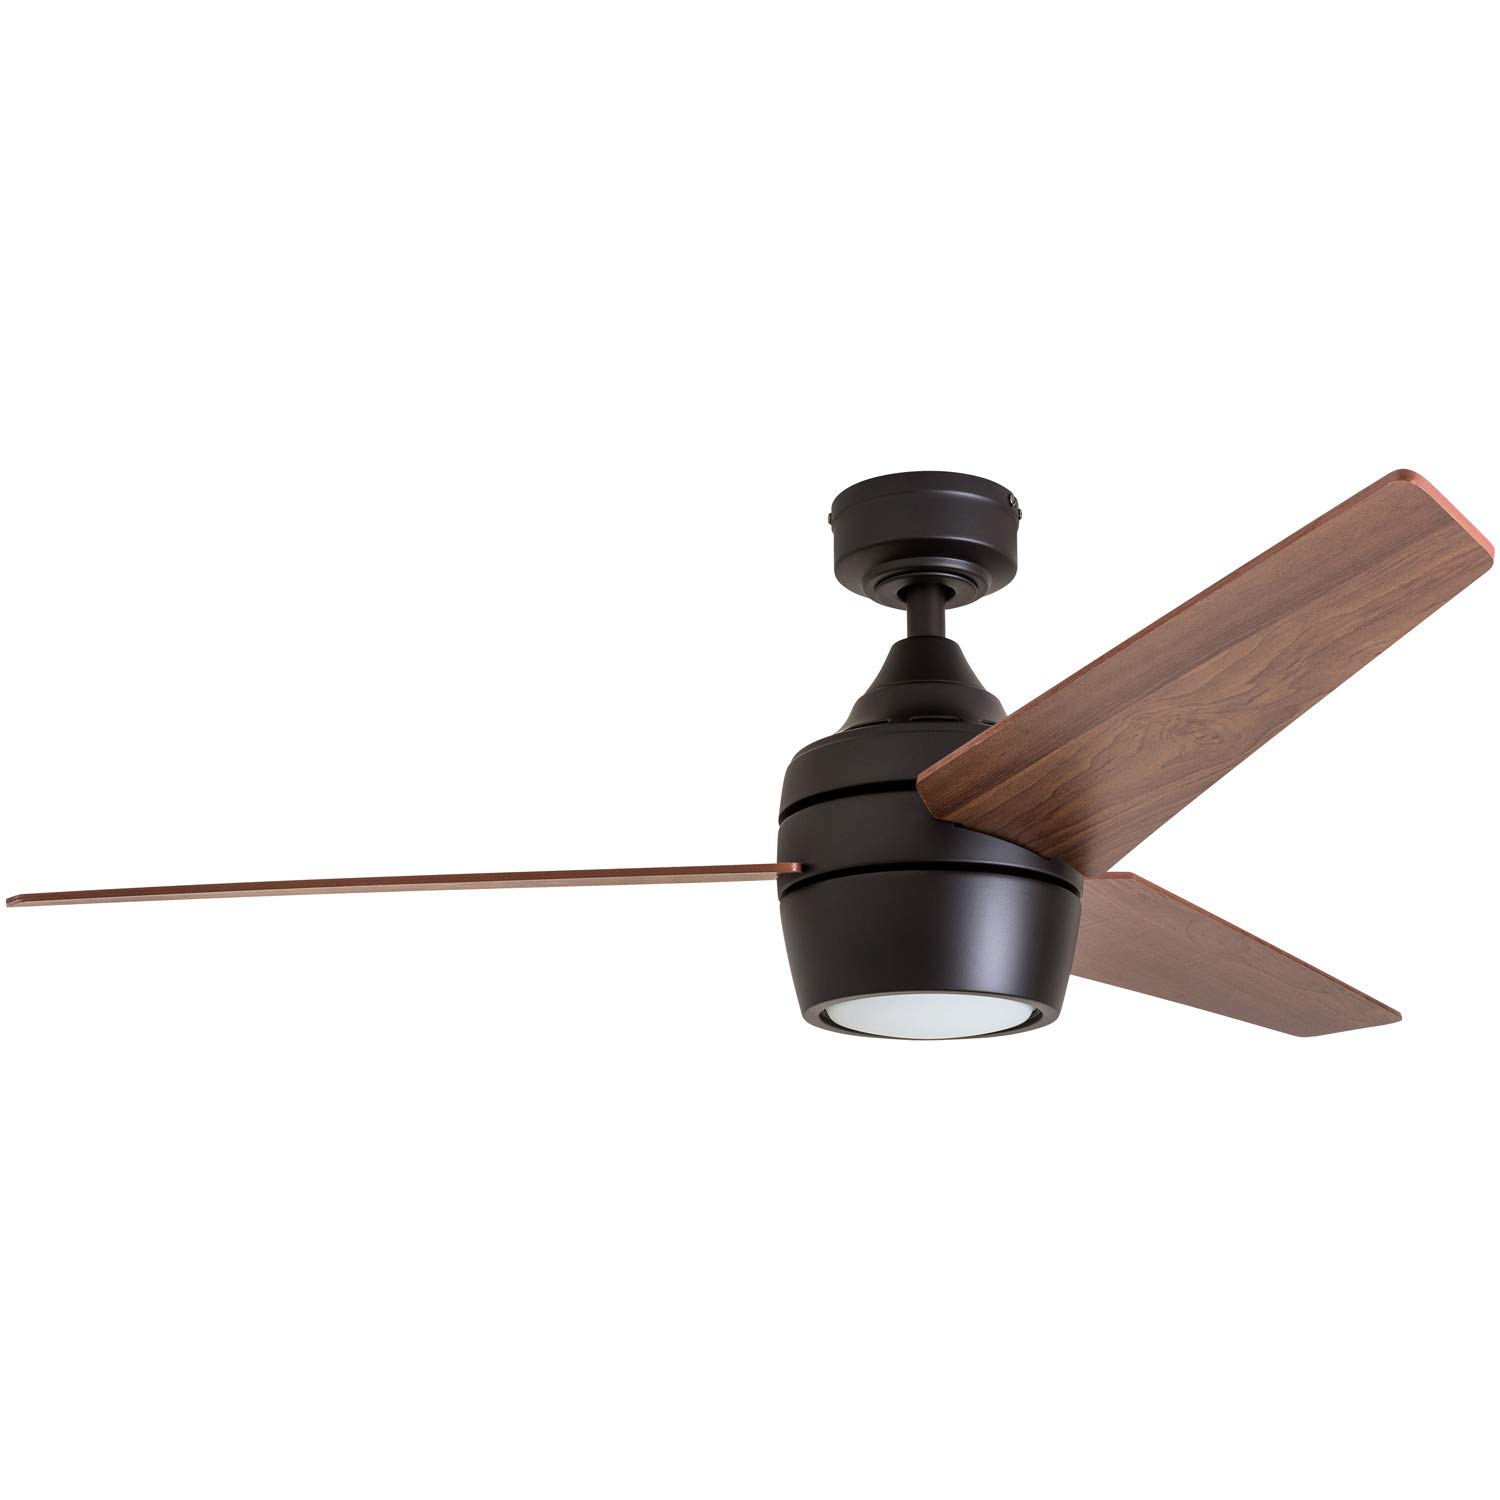 Honeywell 50603 Eamon Modern Ceiling Fan with Remote Control, 52'', Bronze